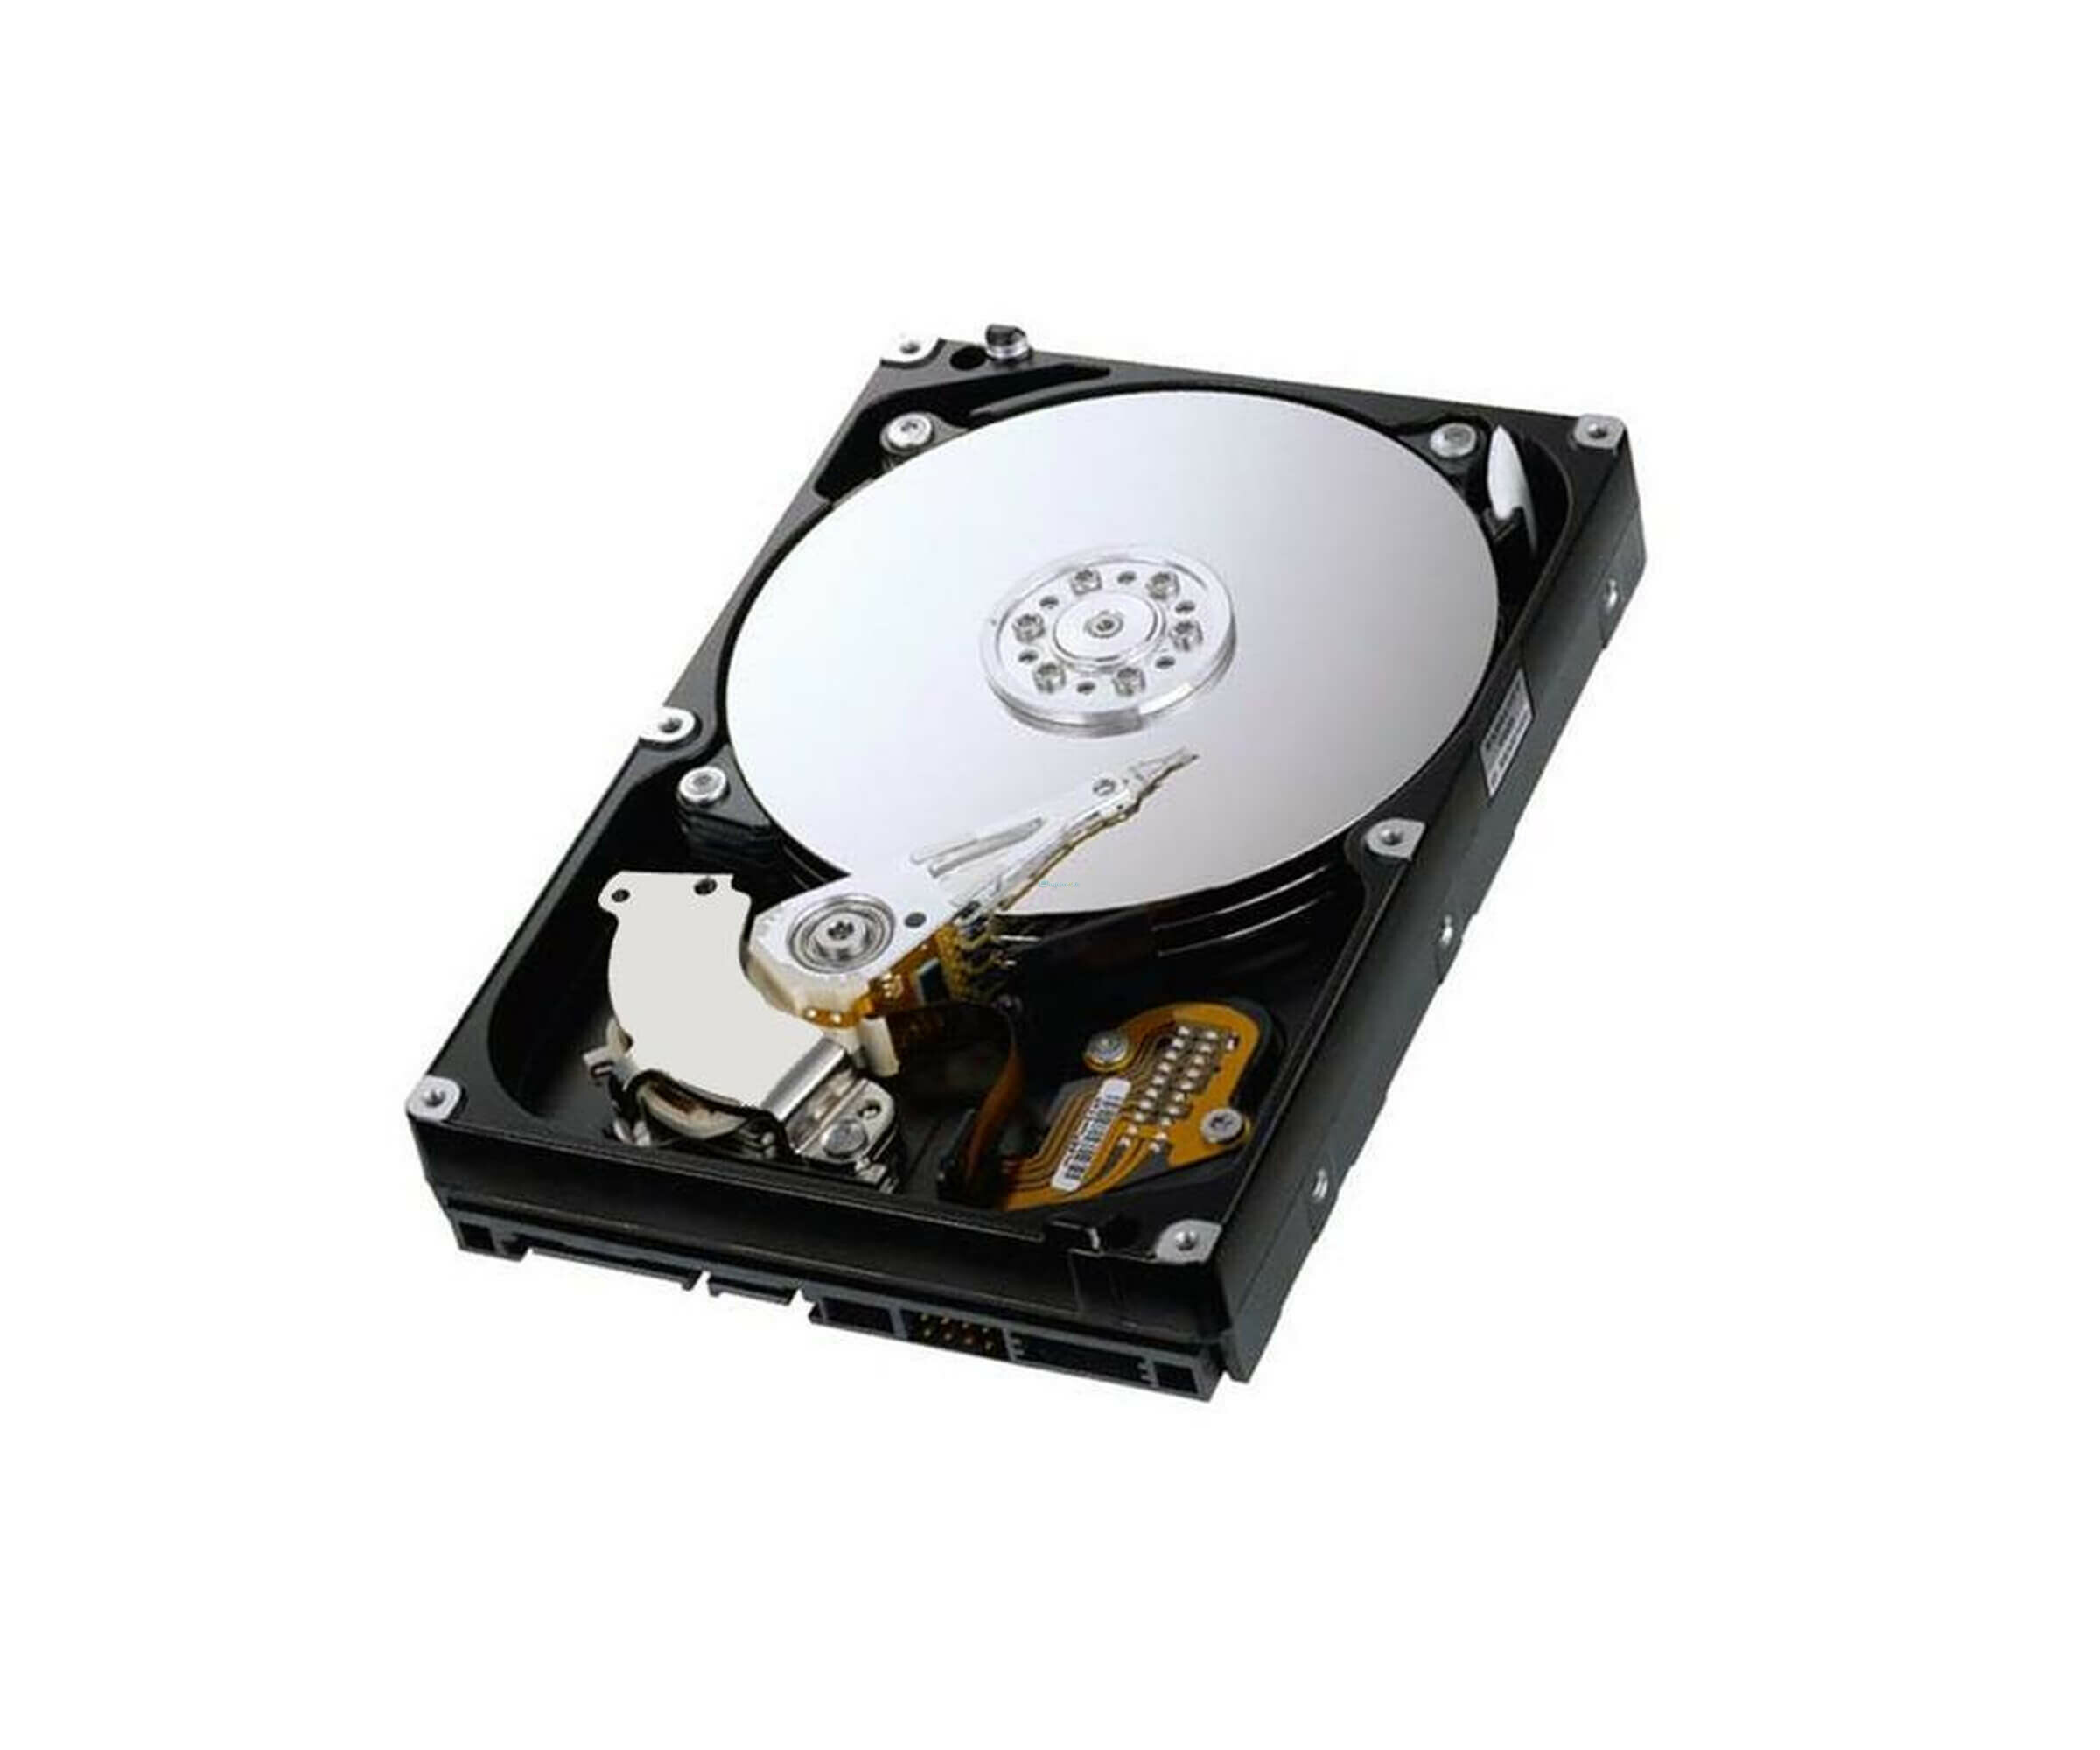 Seagate Barracuda ST380815AS 7200.10 - Festplatte - 80 GB - 3.5 - SATA